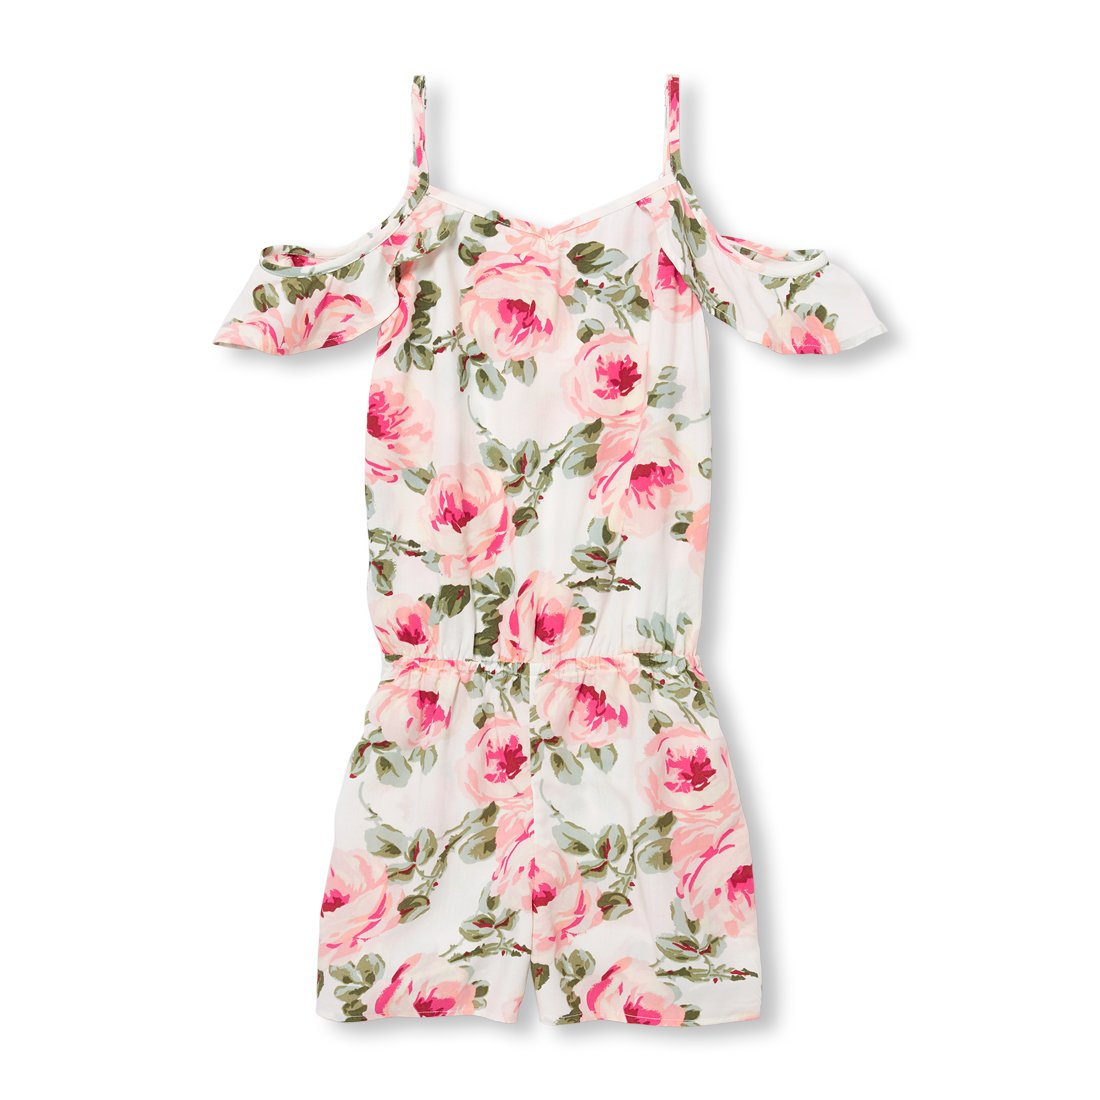 The Children's Place Big Girls' Floral Woven Romper, Bunnys Tail, XS (4)